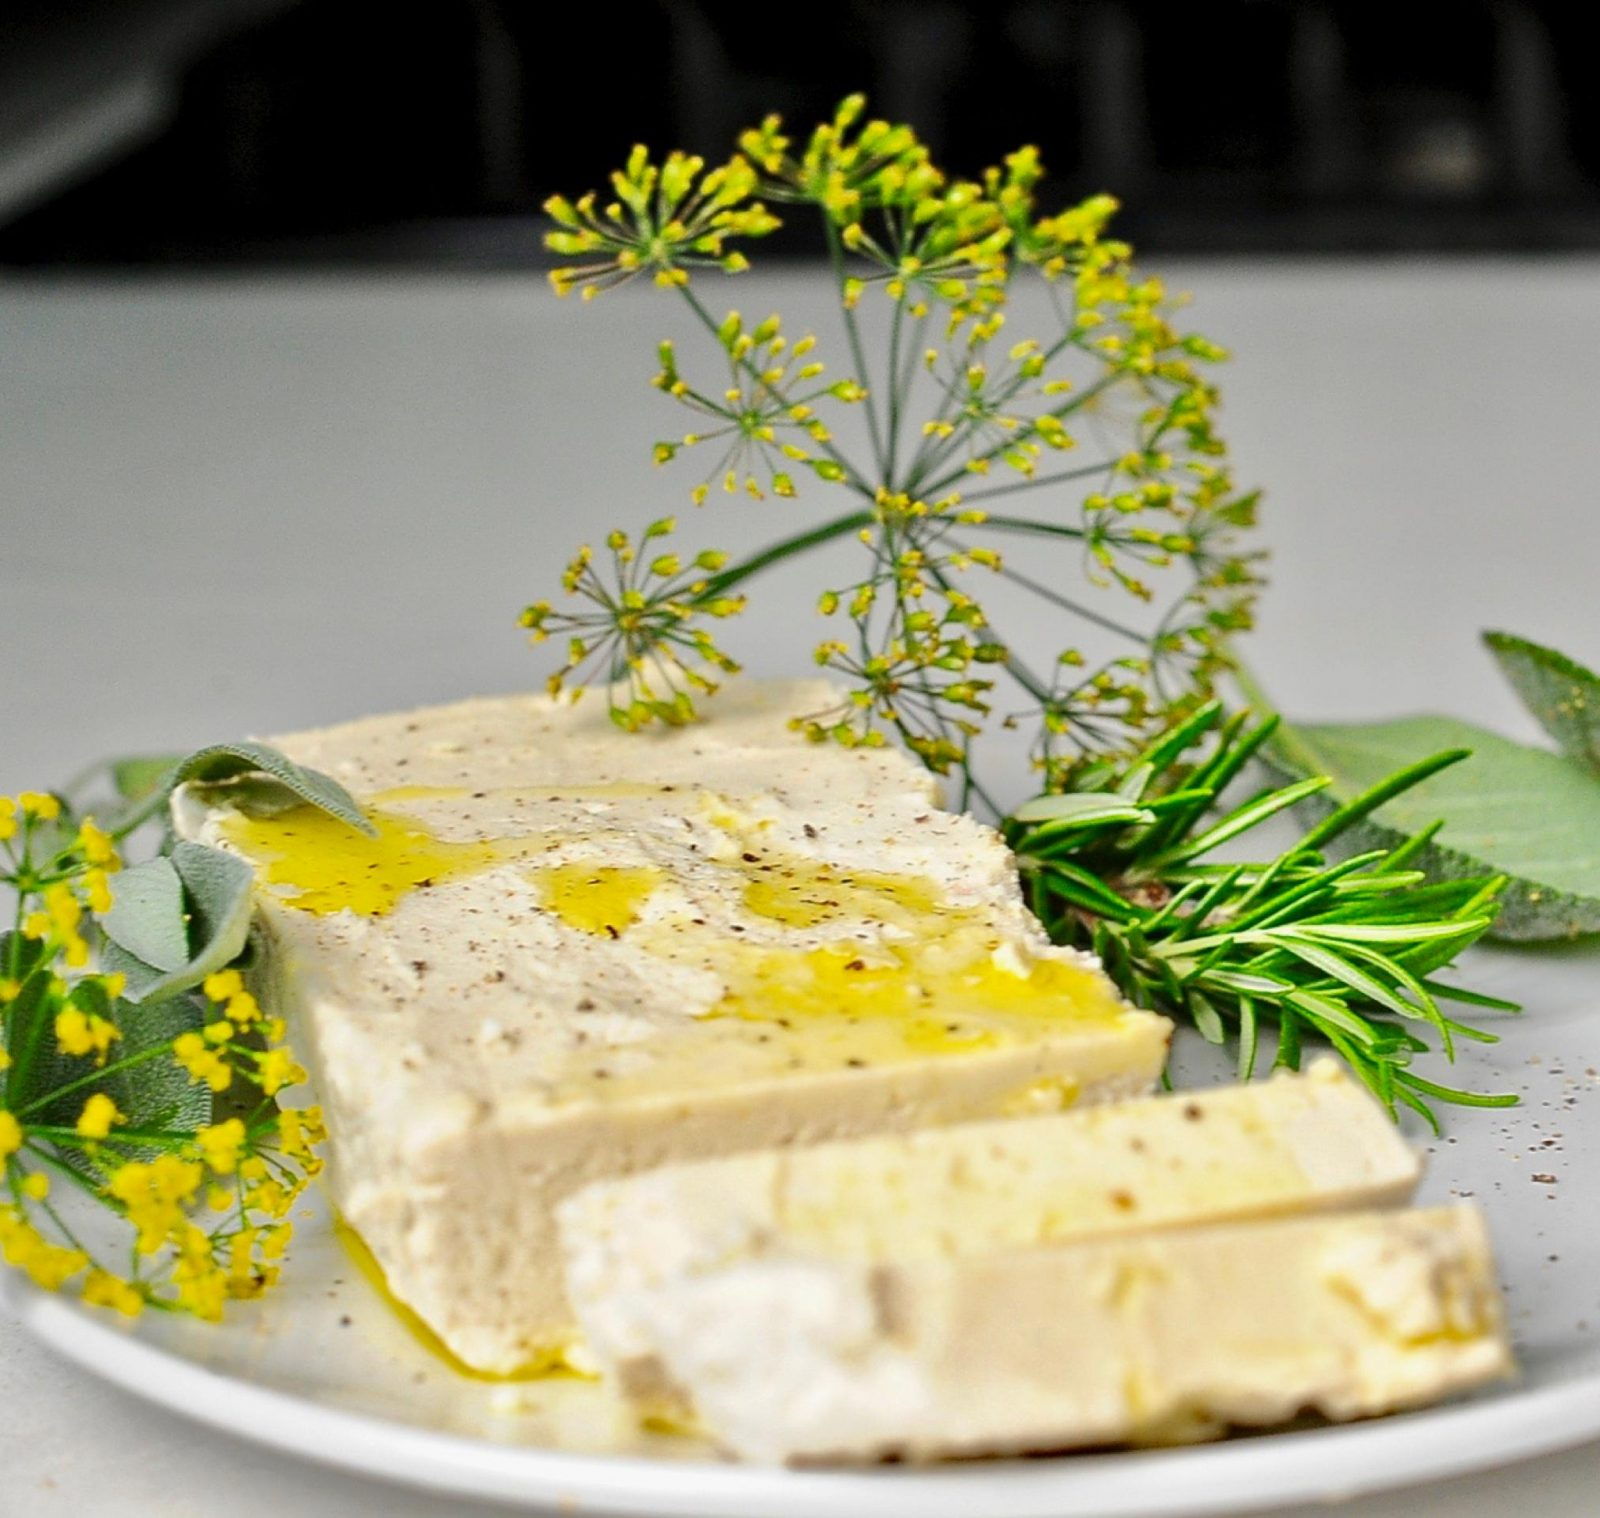 Vegan Almond Feta cheese with fresh herbs.